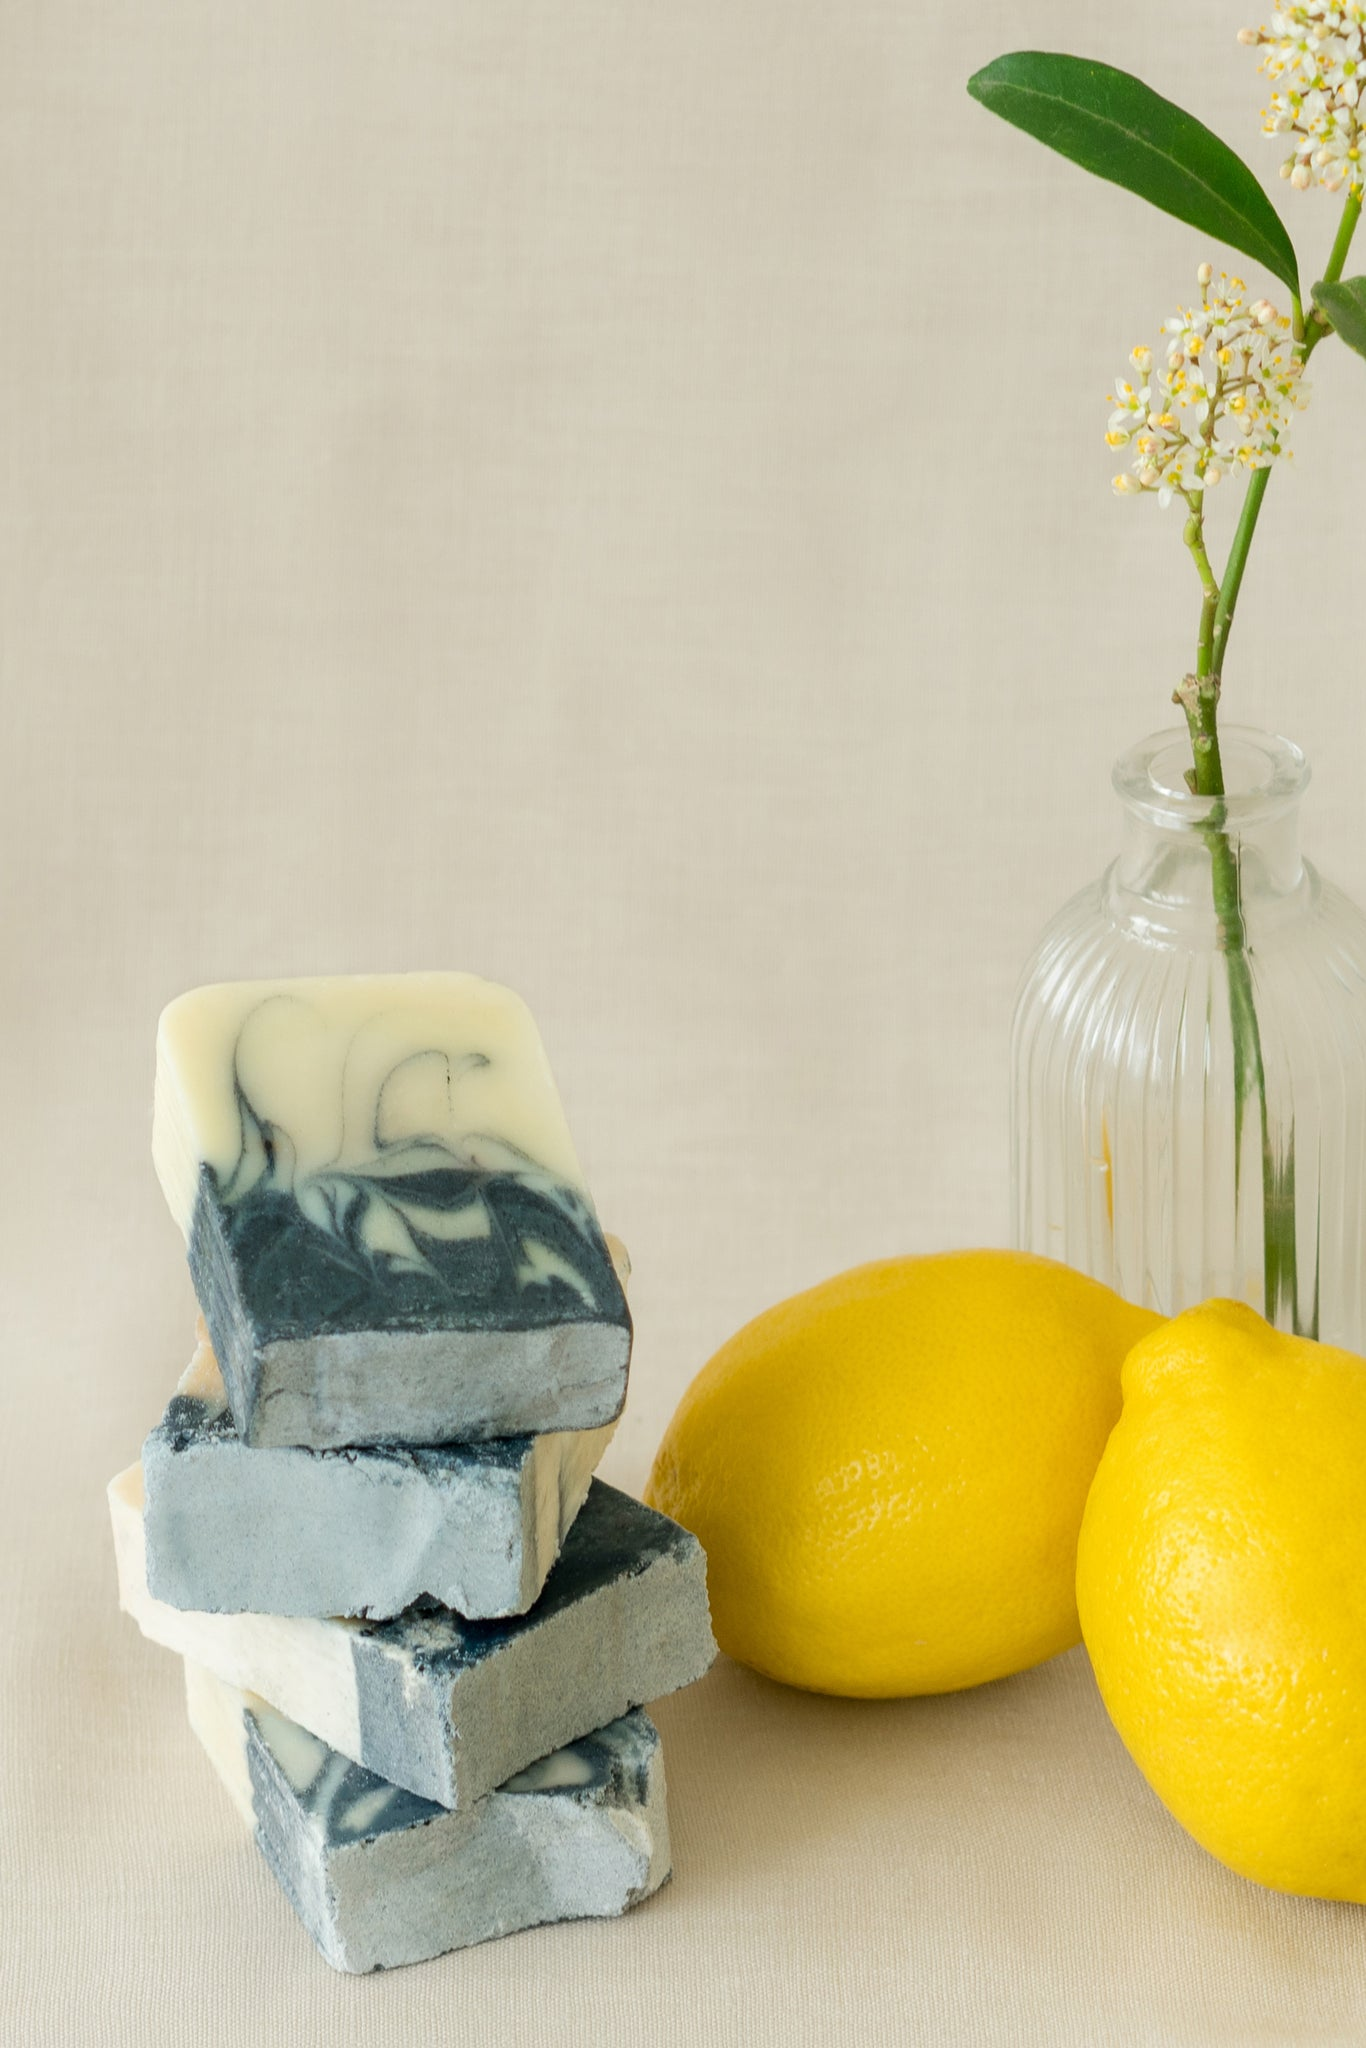 Shan Shui Bar Soap in Indigo & Peppermint Lemon